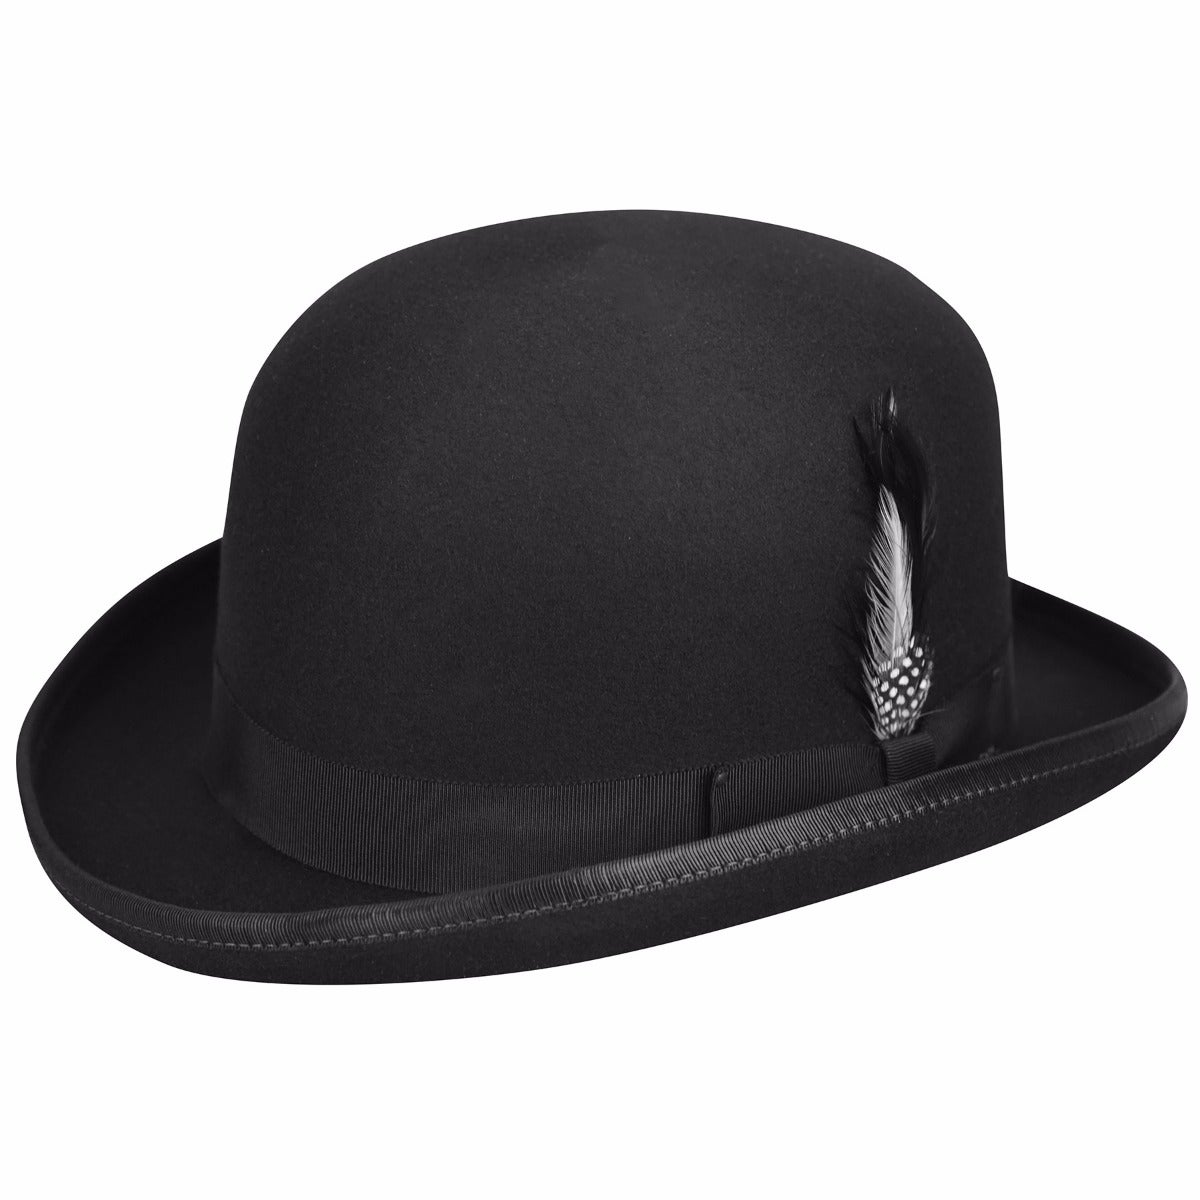 Bailey of Hollywood Derby Hat in Black